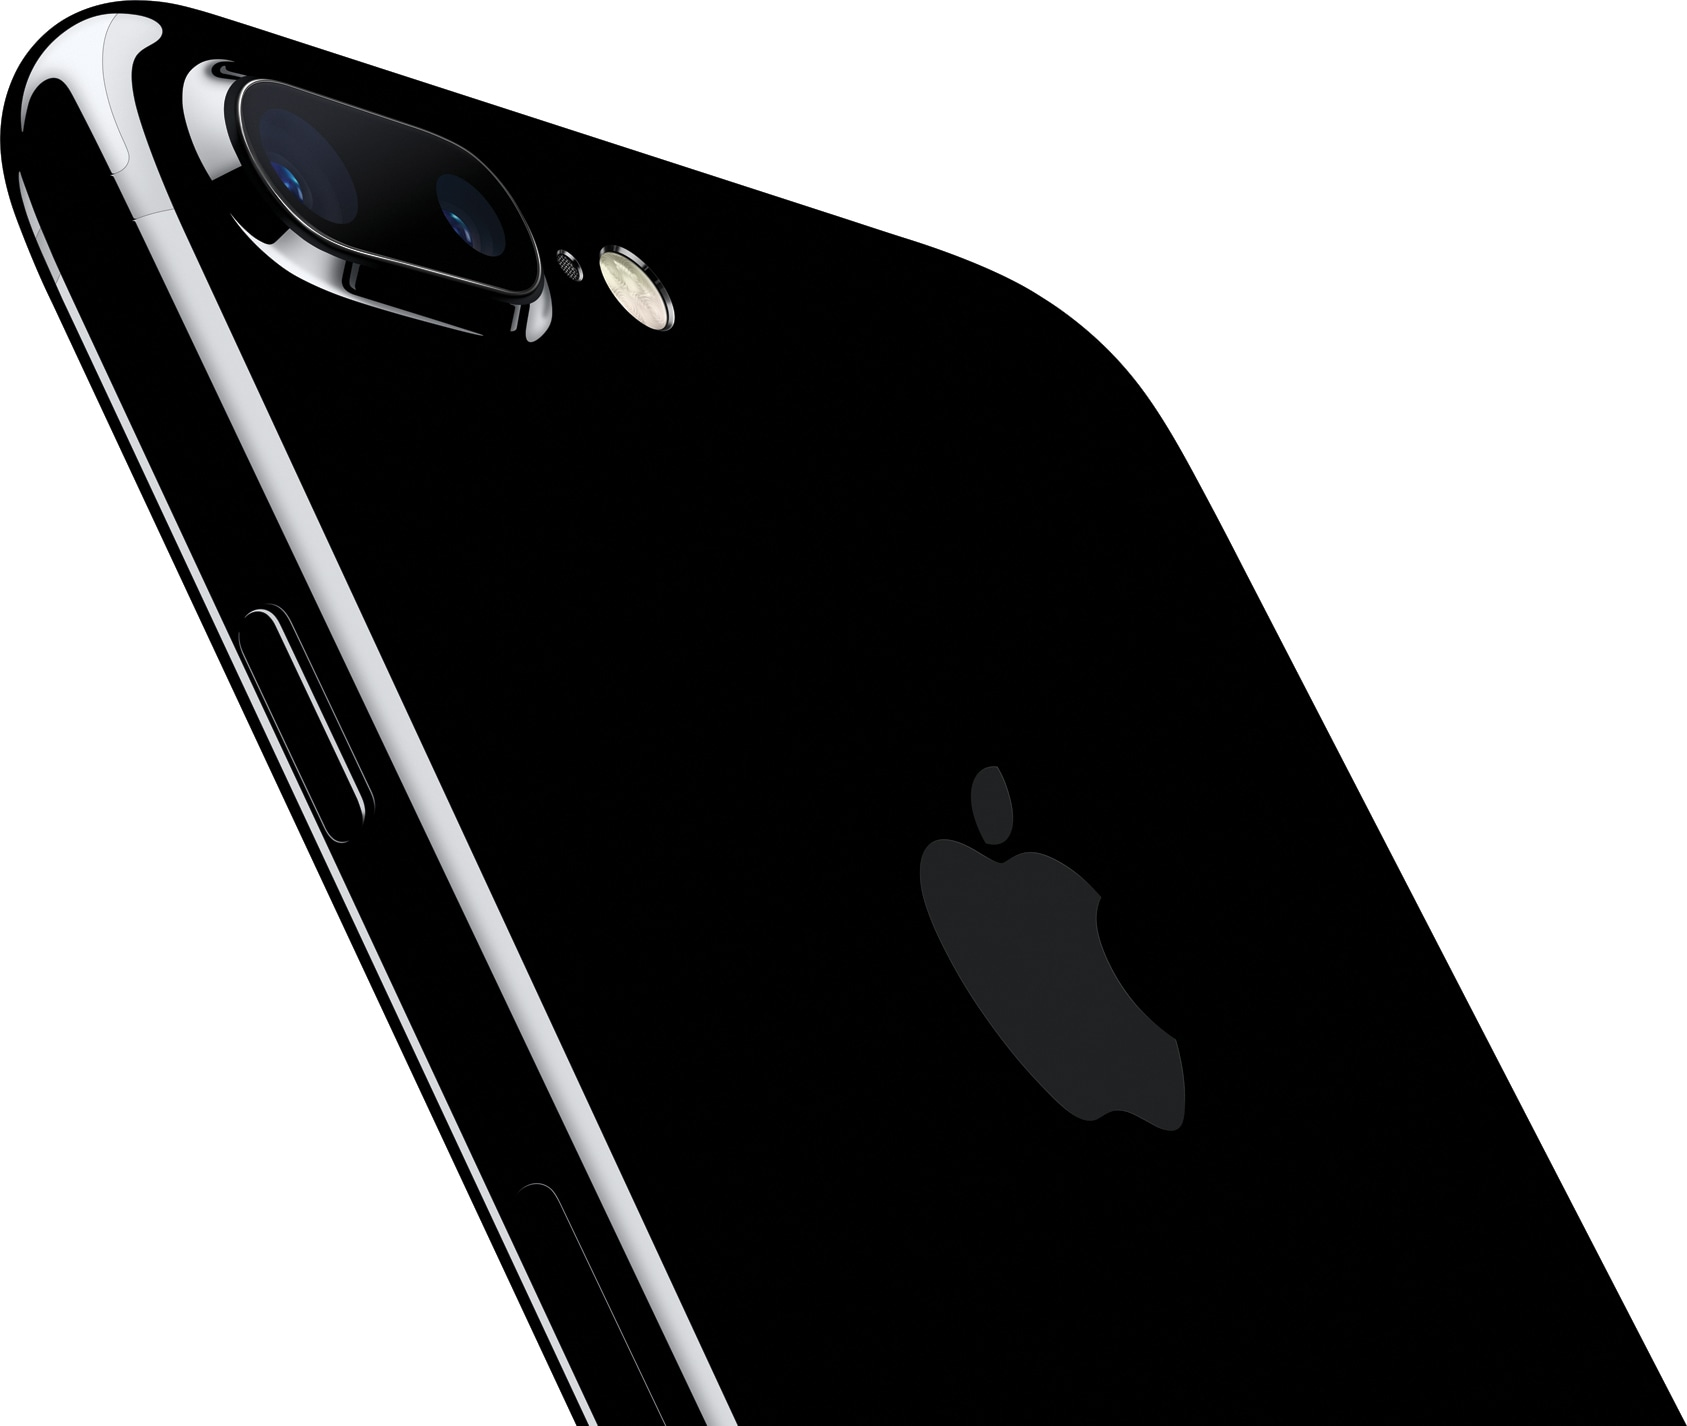 iPhone 7 Plus jet black inclinado de costas